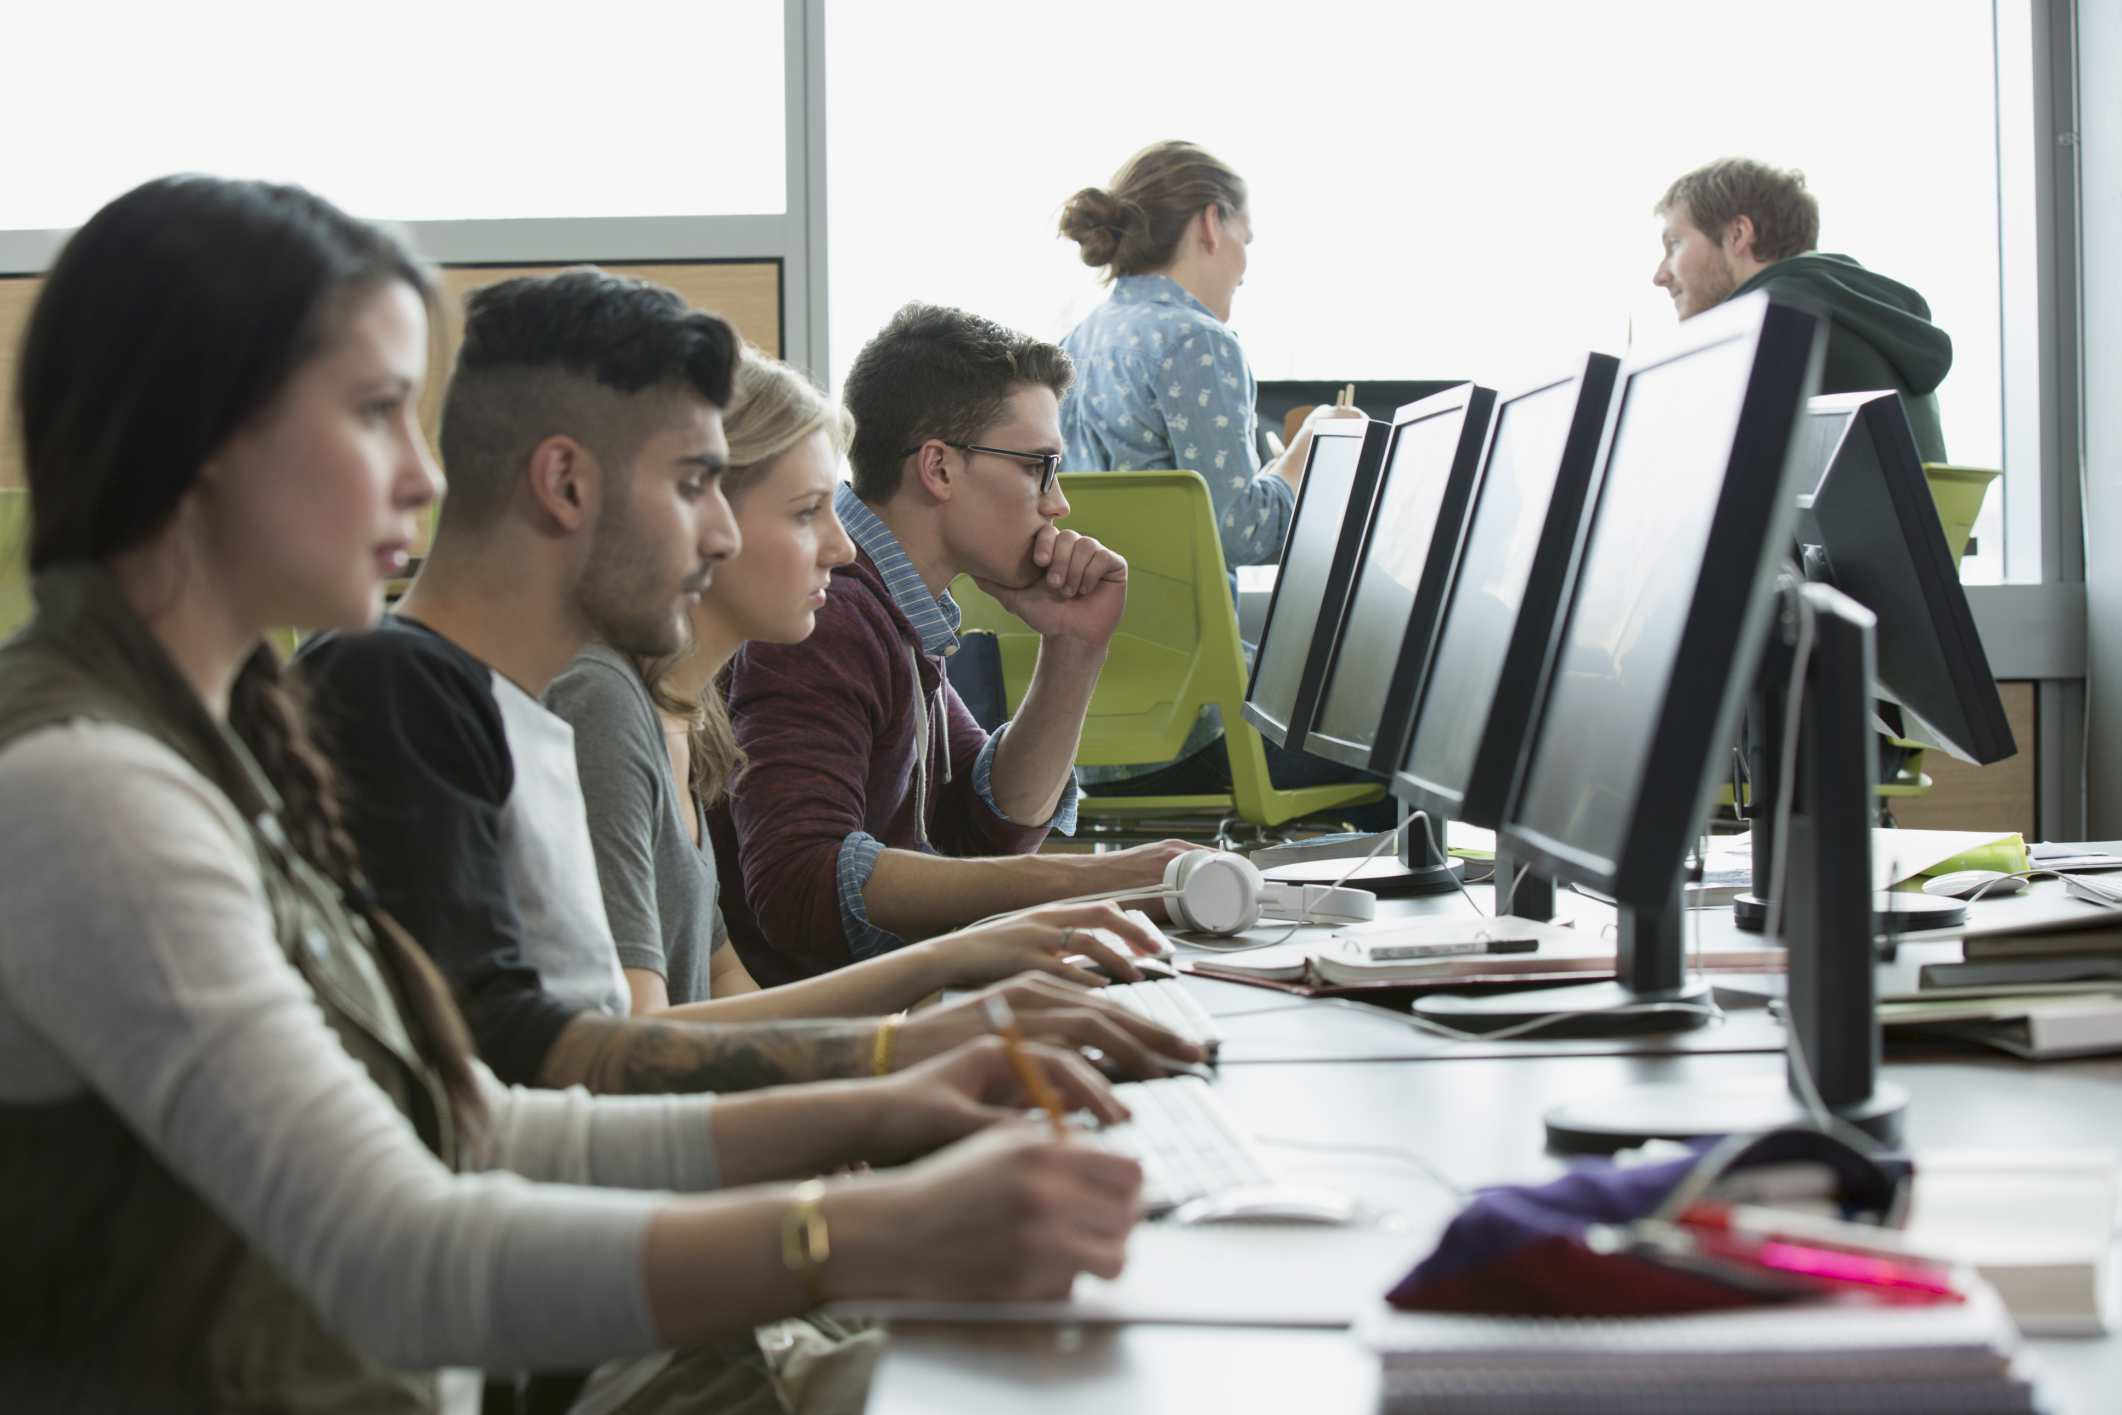 Adult students at computers